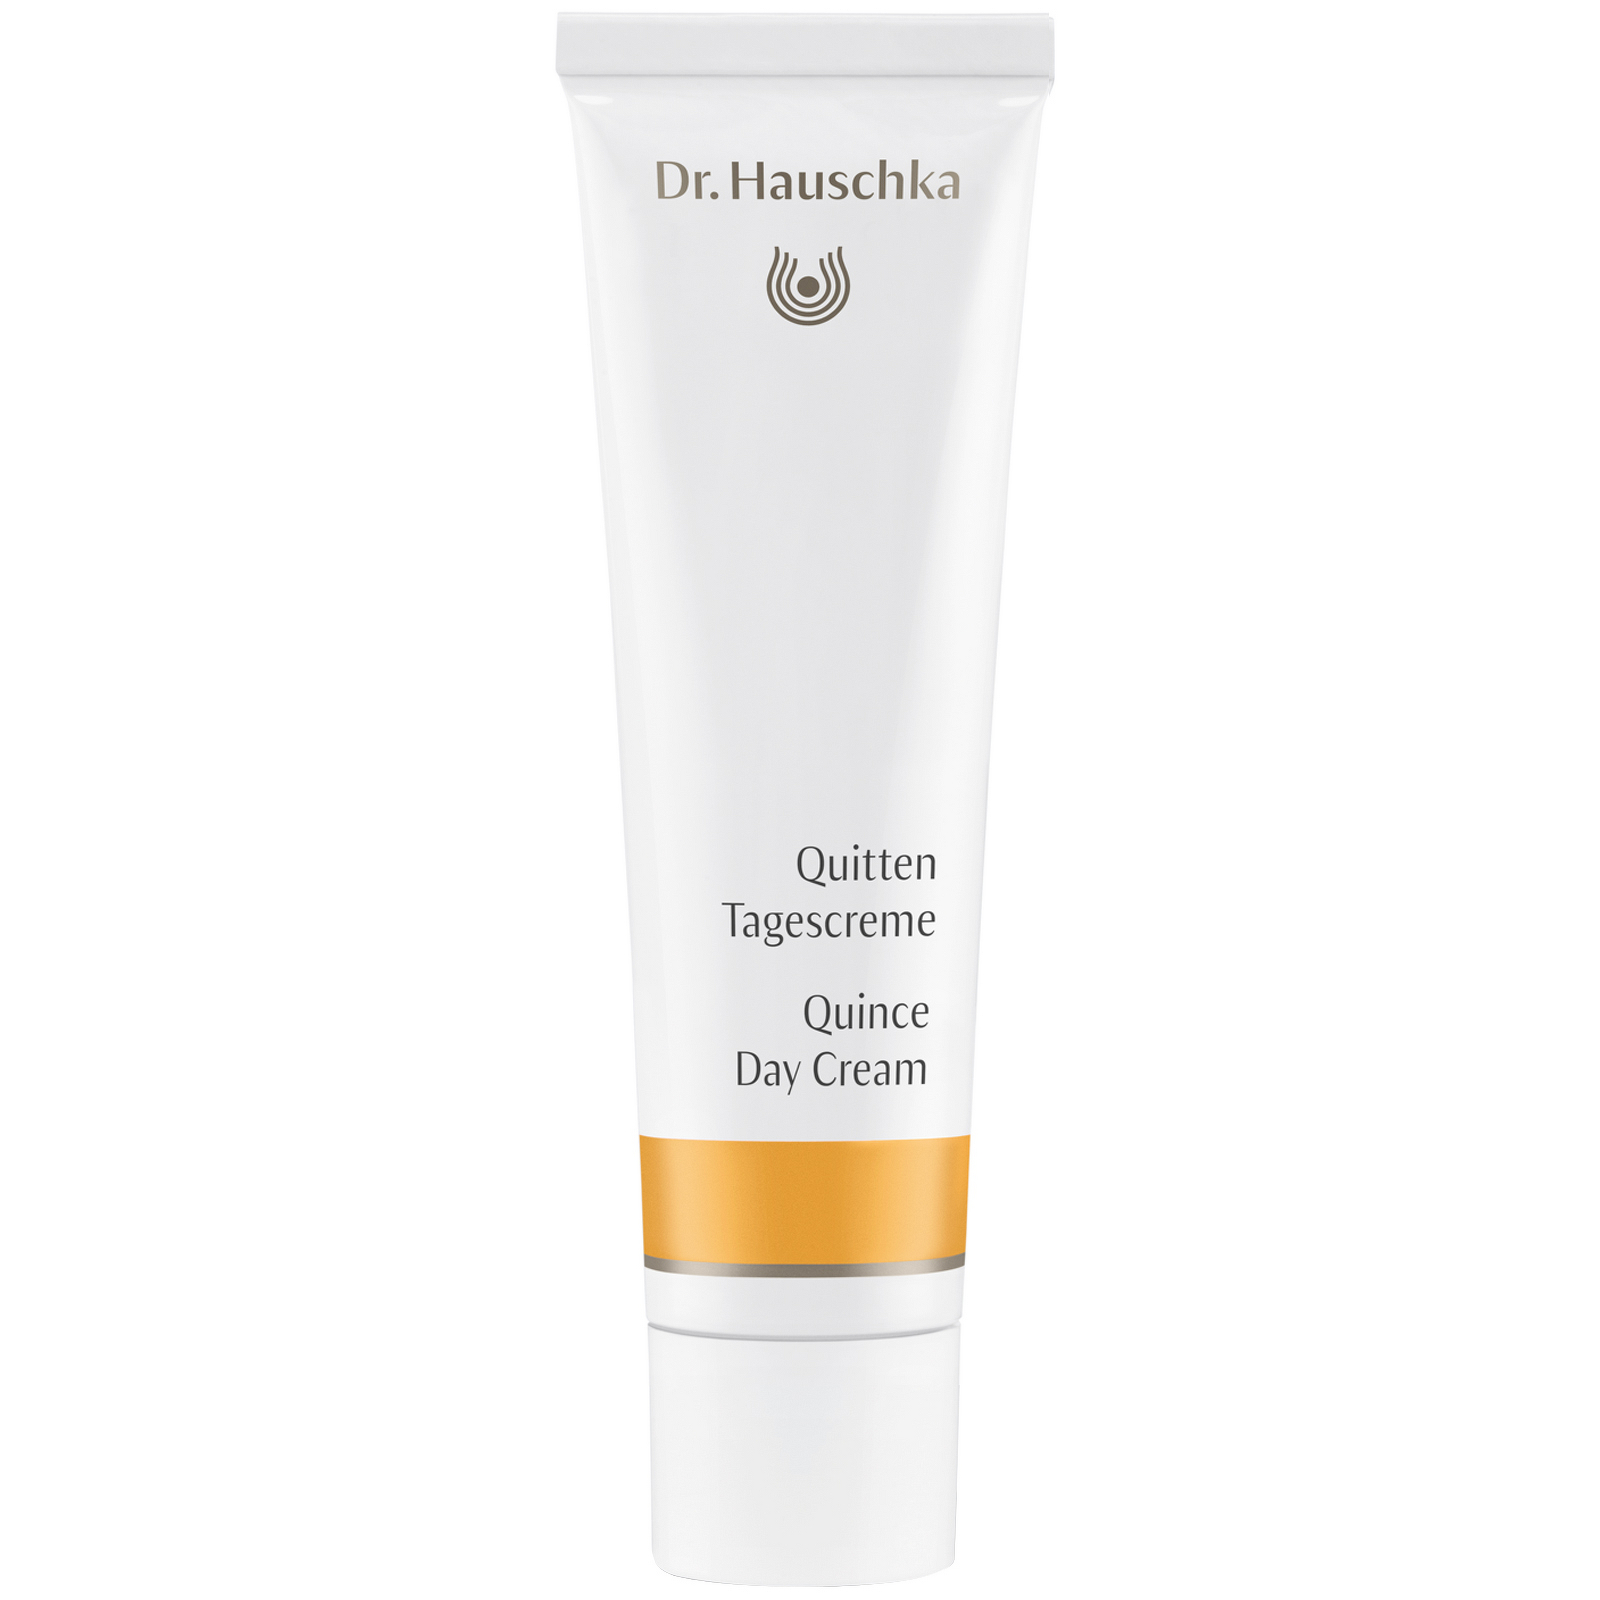 Dr. Hauschka Face Care Quince Day Cream 30ml